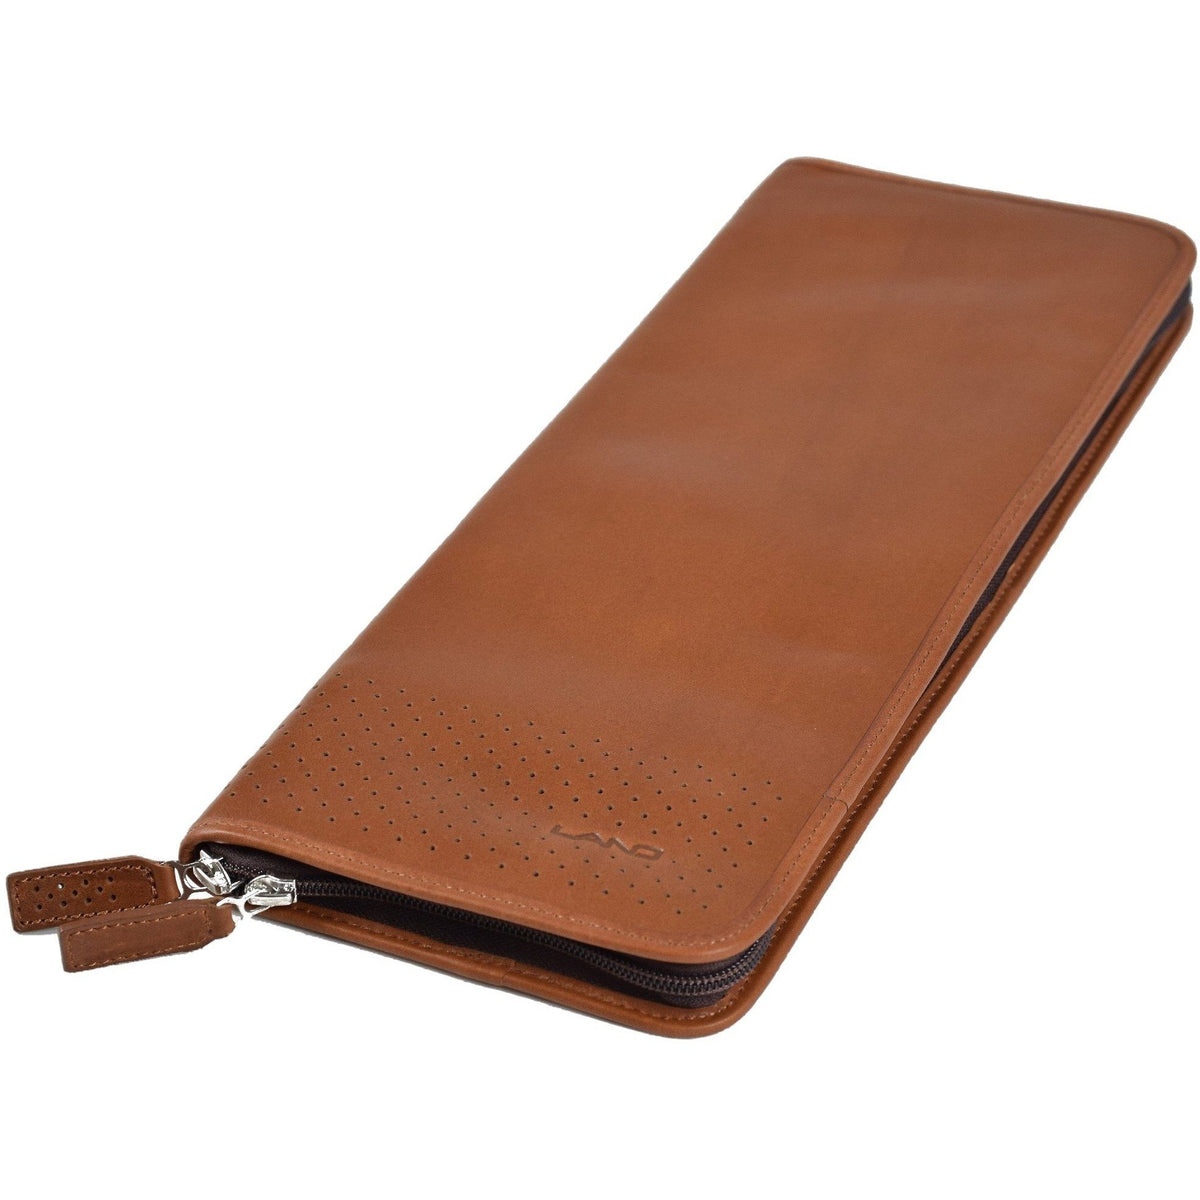 DuPont Tie Carrier, Tie Holder | LAND Leather